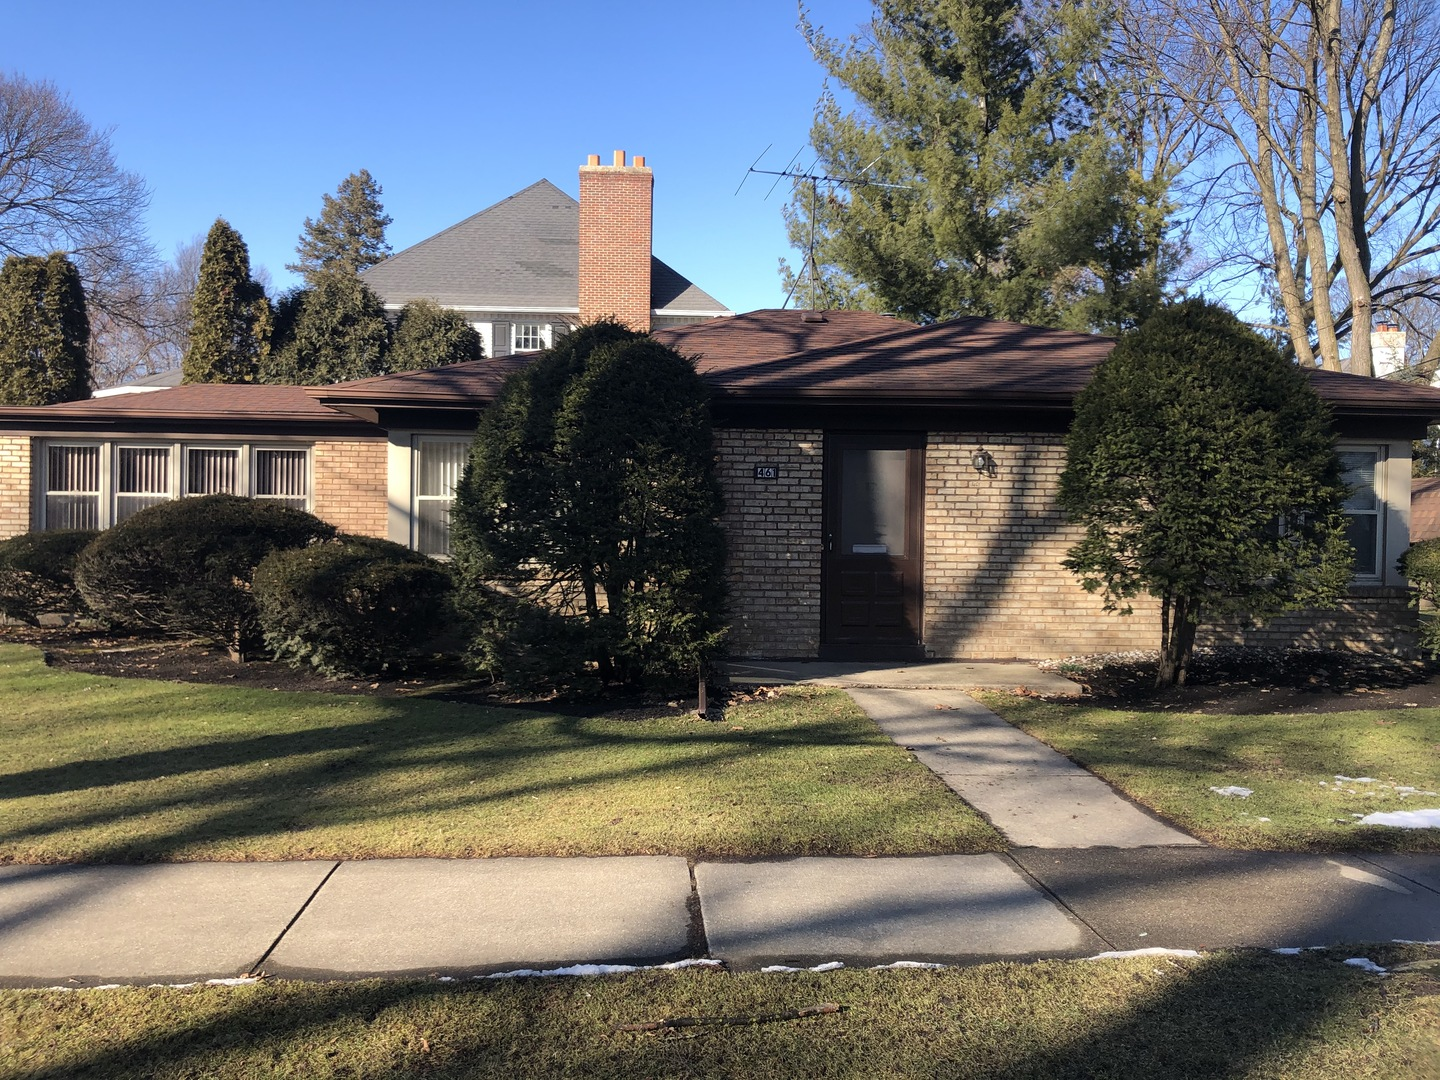 """TEAR DOWN OR REHAB PROPERTY  ~ GREAT LOCATION IN COLLEGE VIEW NEIGHBORHOOD NEAR YORK HS, ELMHURST COLLEGE, LIBRARY & TRAIN/DOWNTOWN ELMHURST.  NICE CORNER LOT - HOUSE NEEDS UPDATING THROUGHOUT - ROOF APPROX. 10 YRS., VINYL WINDOWS - BRICK EXTERIOR.  LARGE LIVING /DINING ROOM, FAMILY RM, LARGE KITCHEN PANTRY, ATTACHED 1 CAR GARAGE.  HOUSE BEING SOLD """"AS-IS""""."""